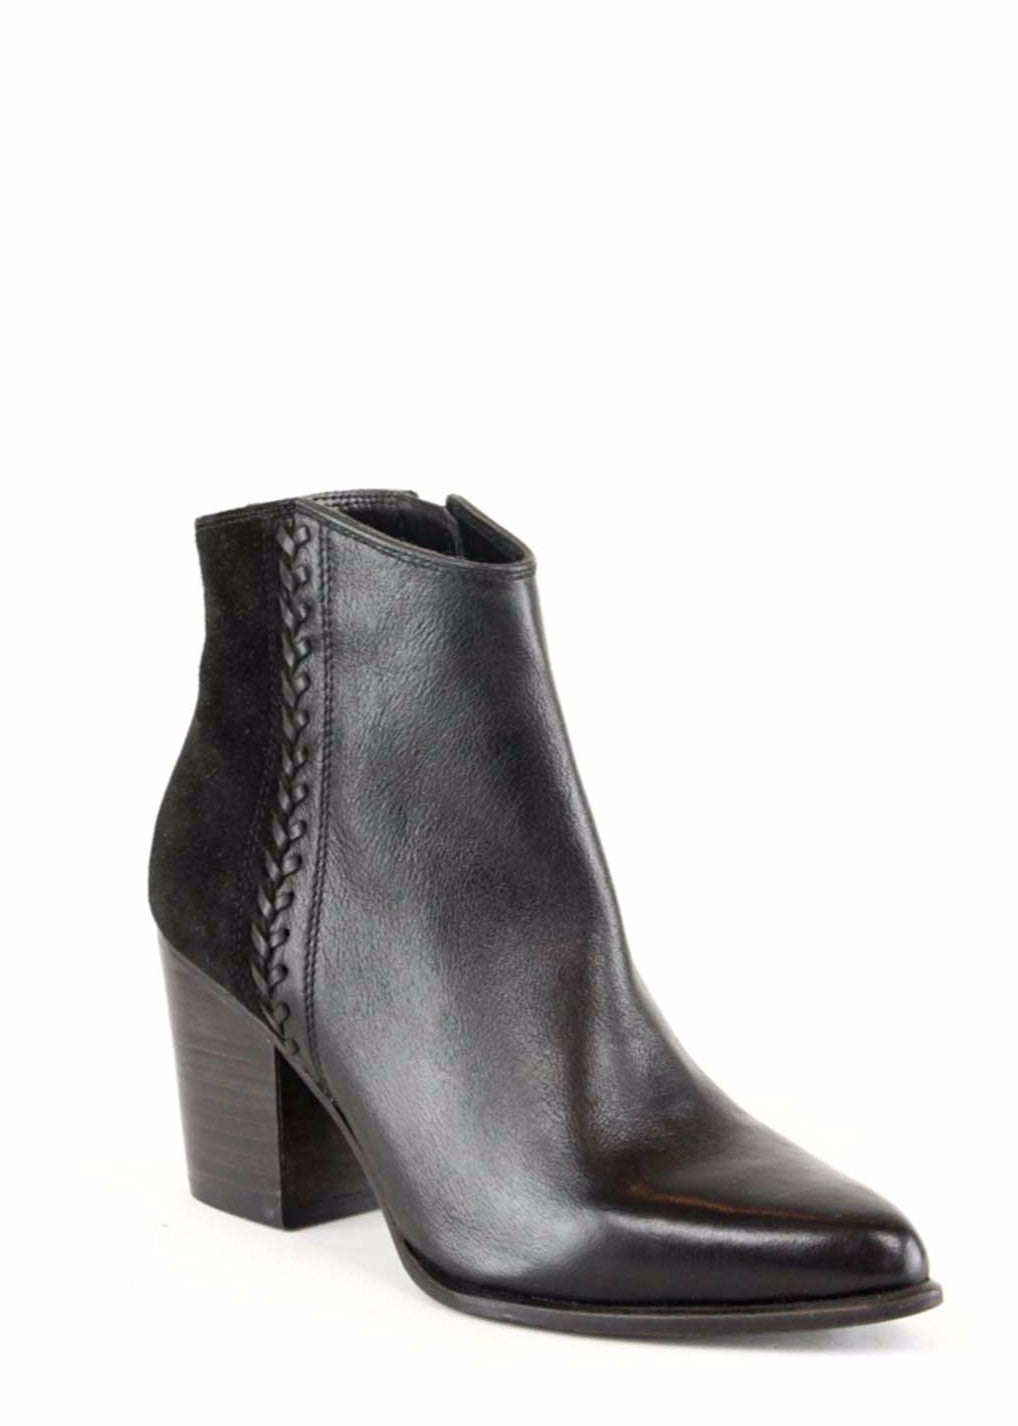 JENA - Leather Ankle Boots -SOLD OUT